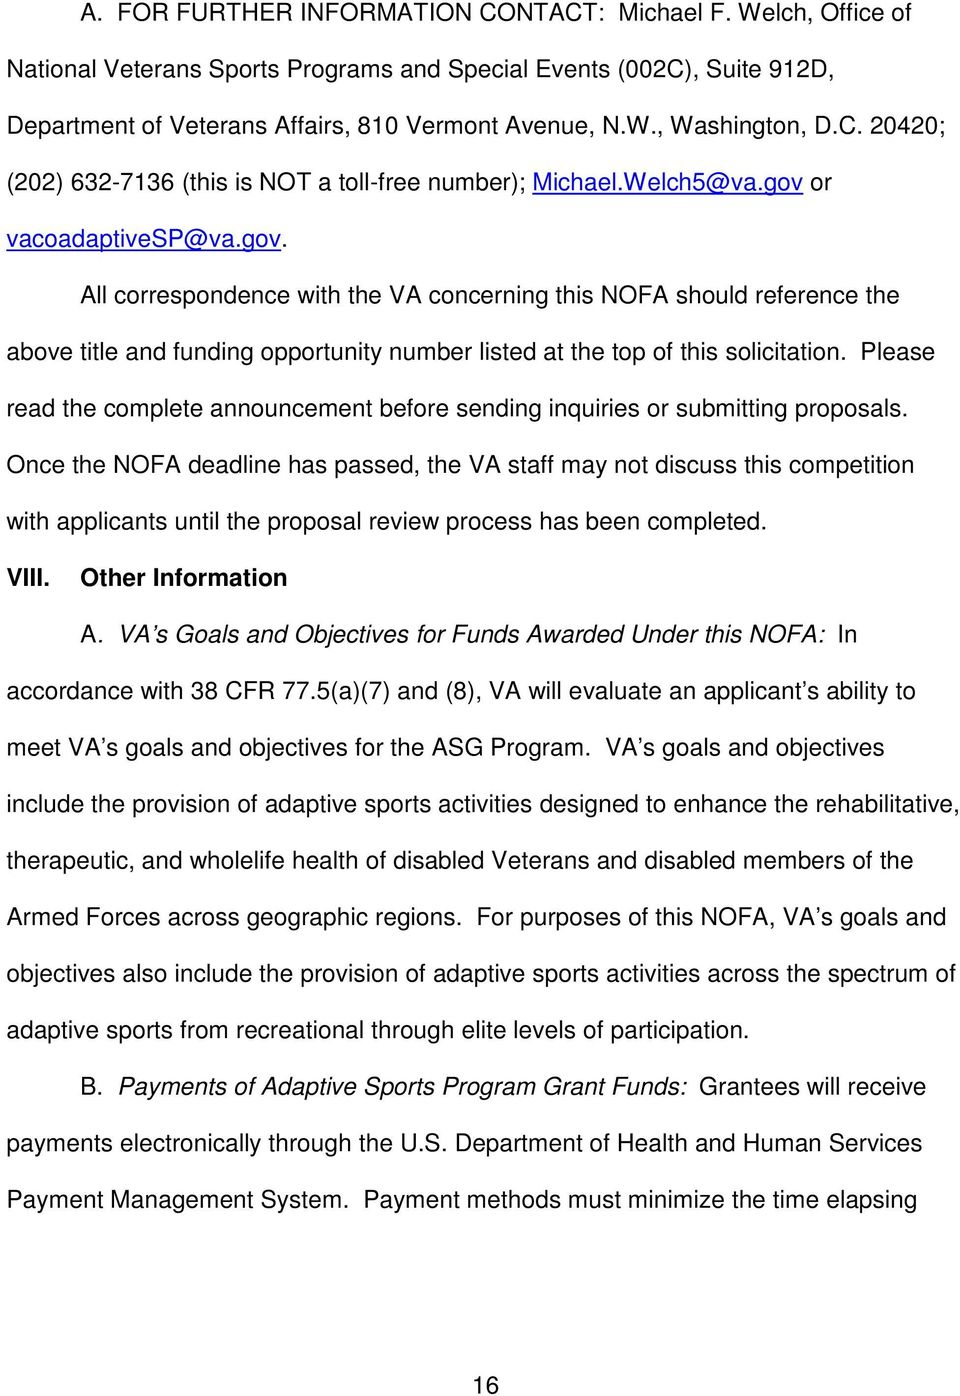 or vacoadaptivesp@va.gov. All correspondence with the VA concerning this NOFA should reference the above title and funding opportunity number listed at the top of this solicitation.